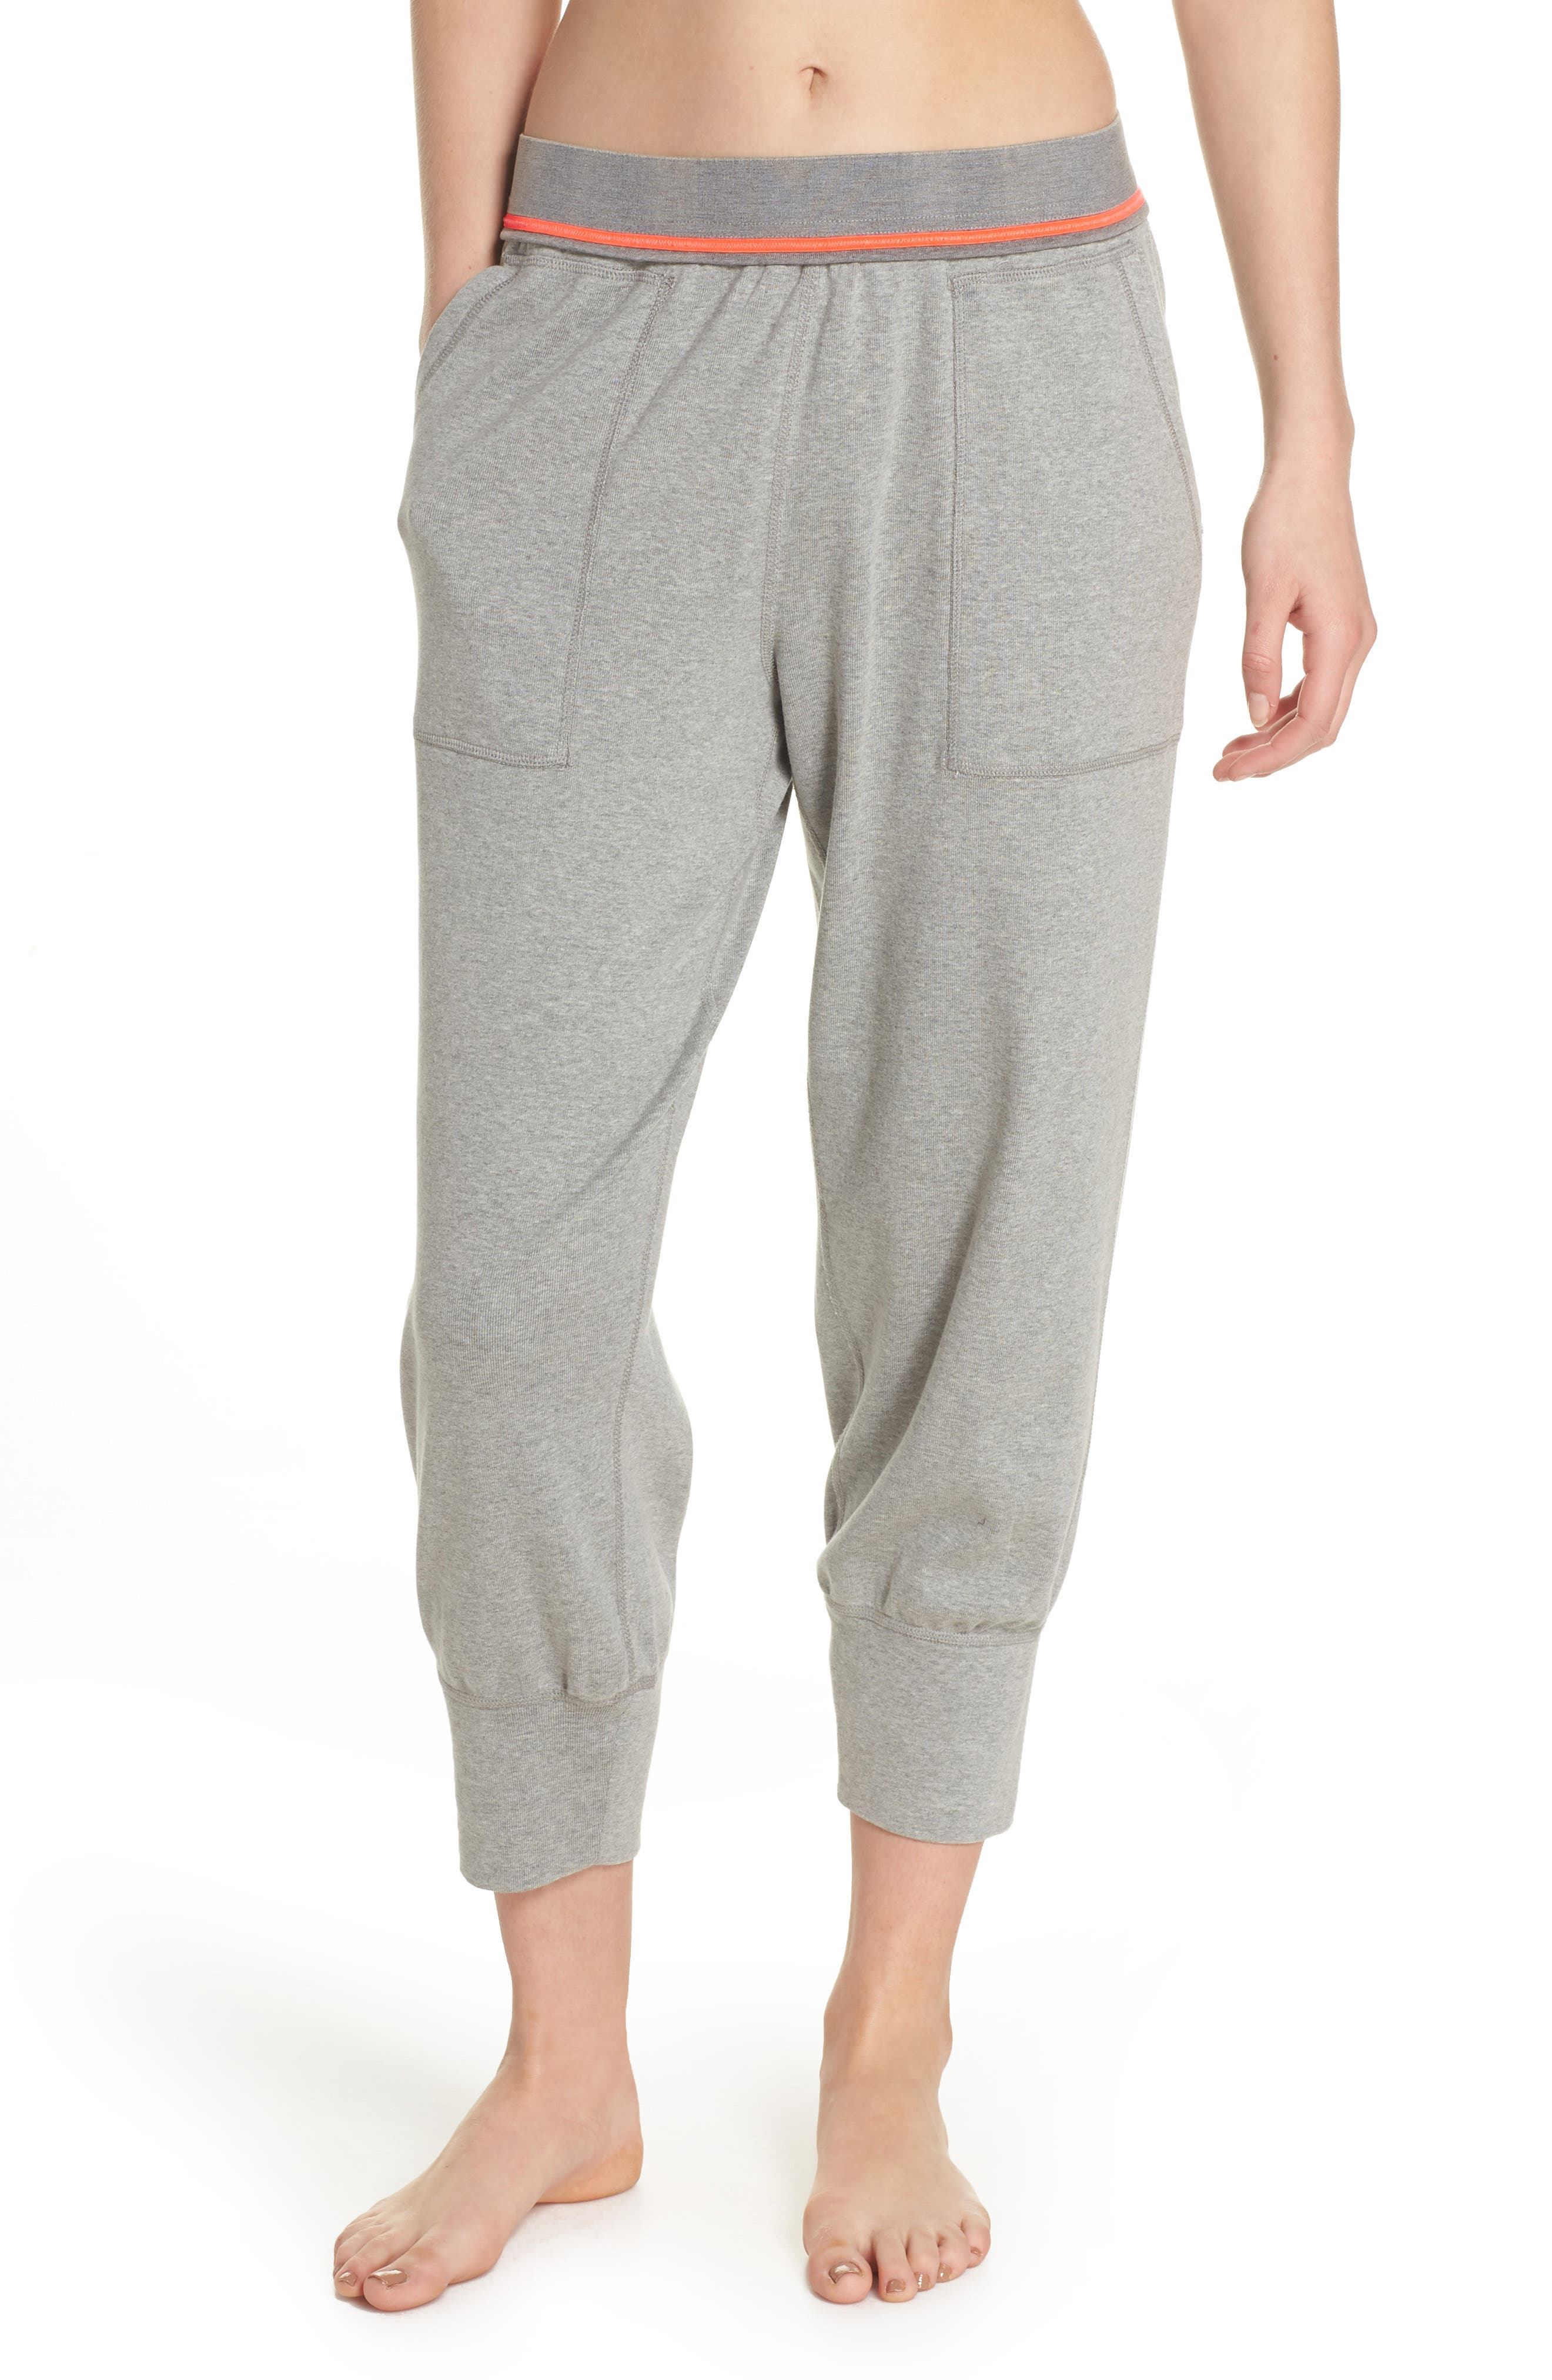 FREE PEOPLE MOVEMENT,                             Jordan Sweatpants,                             Main thumbnail 1, color,                             030